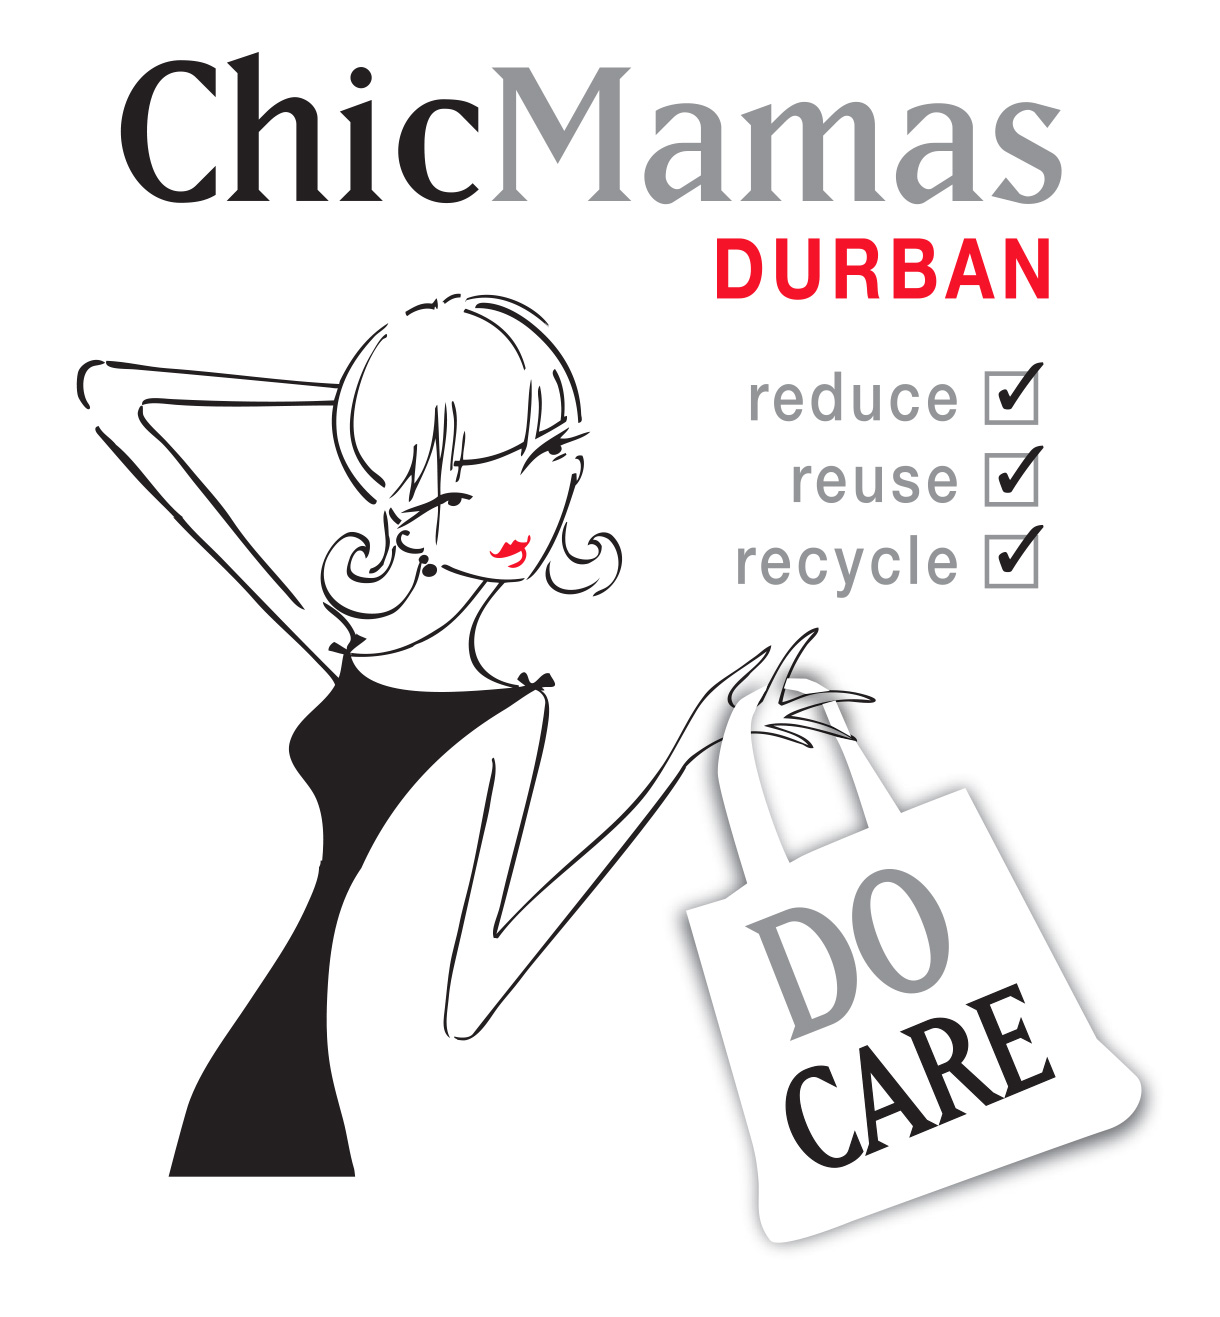 Chic Mamas Do Care Durban 2019